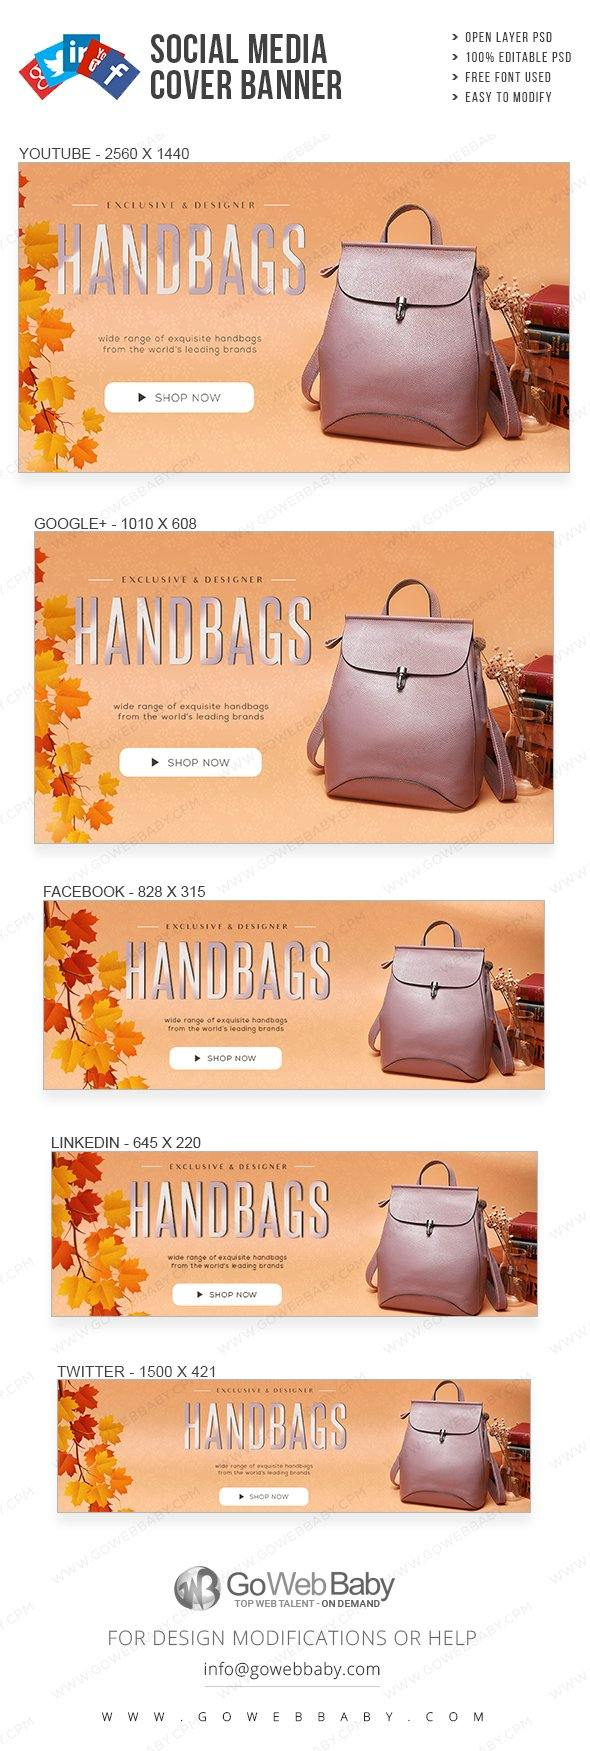 Social Media Cover Banner - Designer Handbags For Website Marketing - GoWebBaby.Com